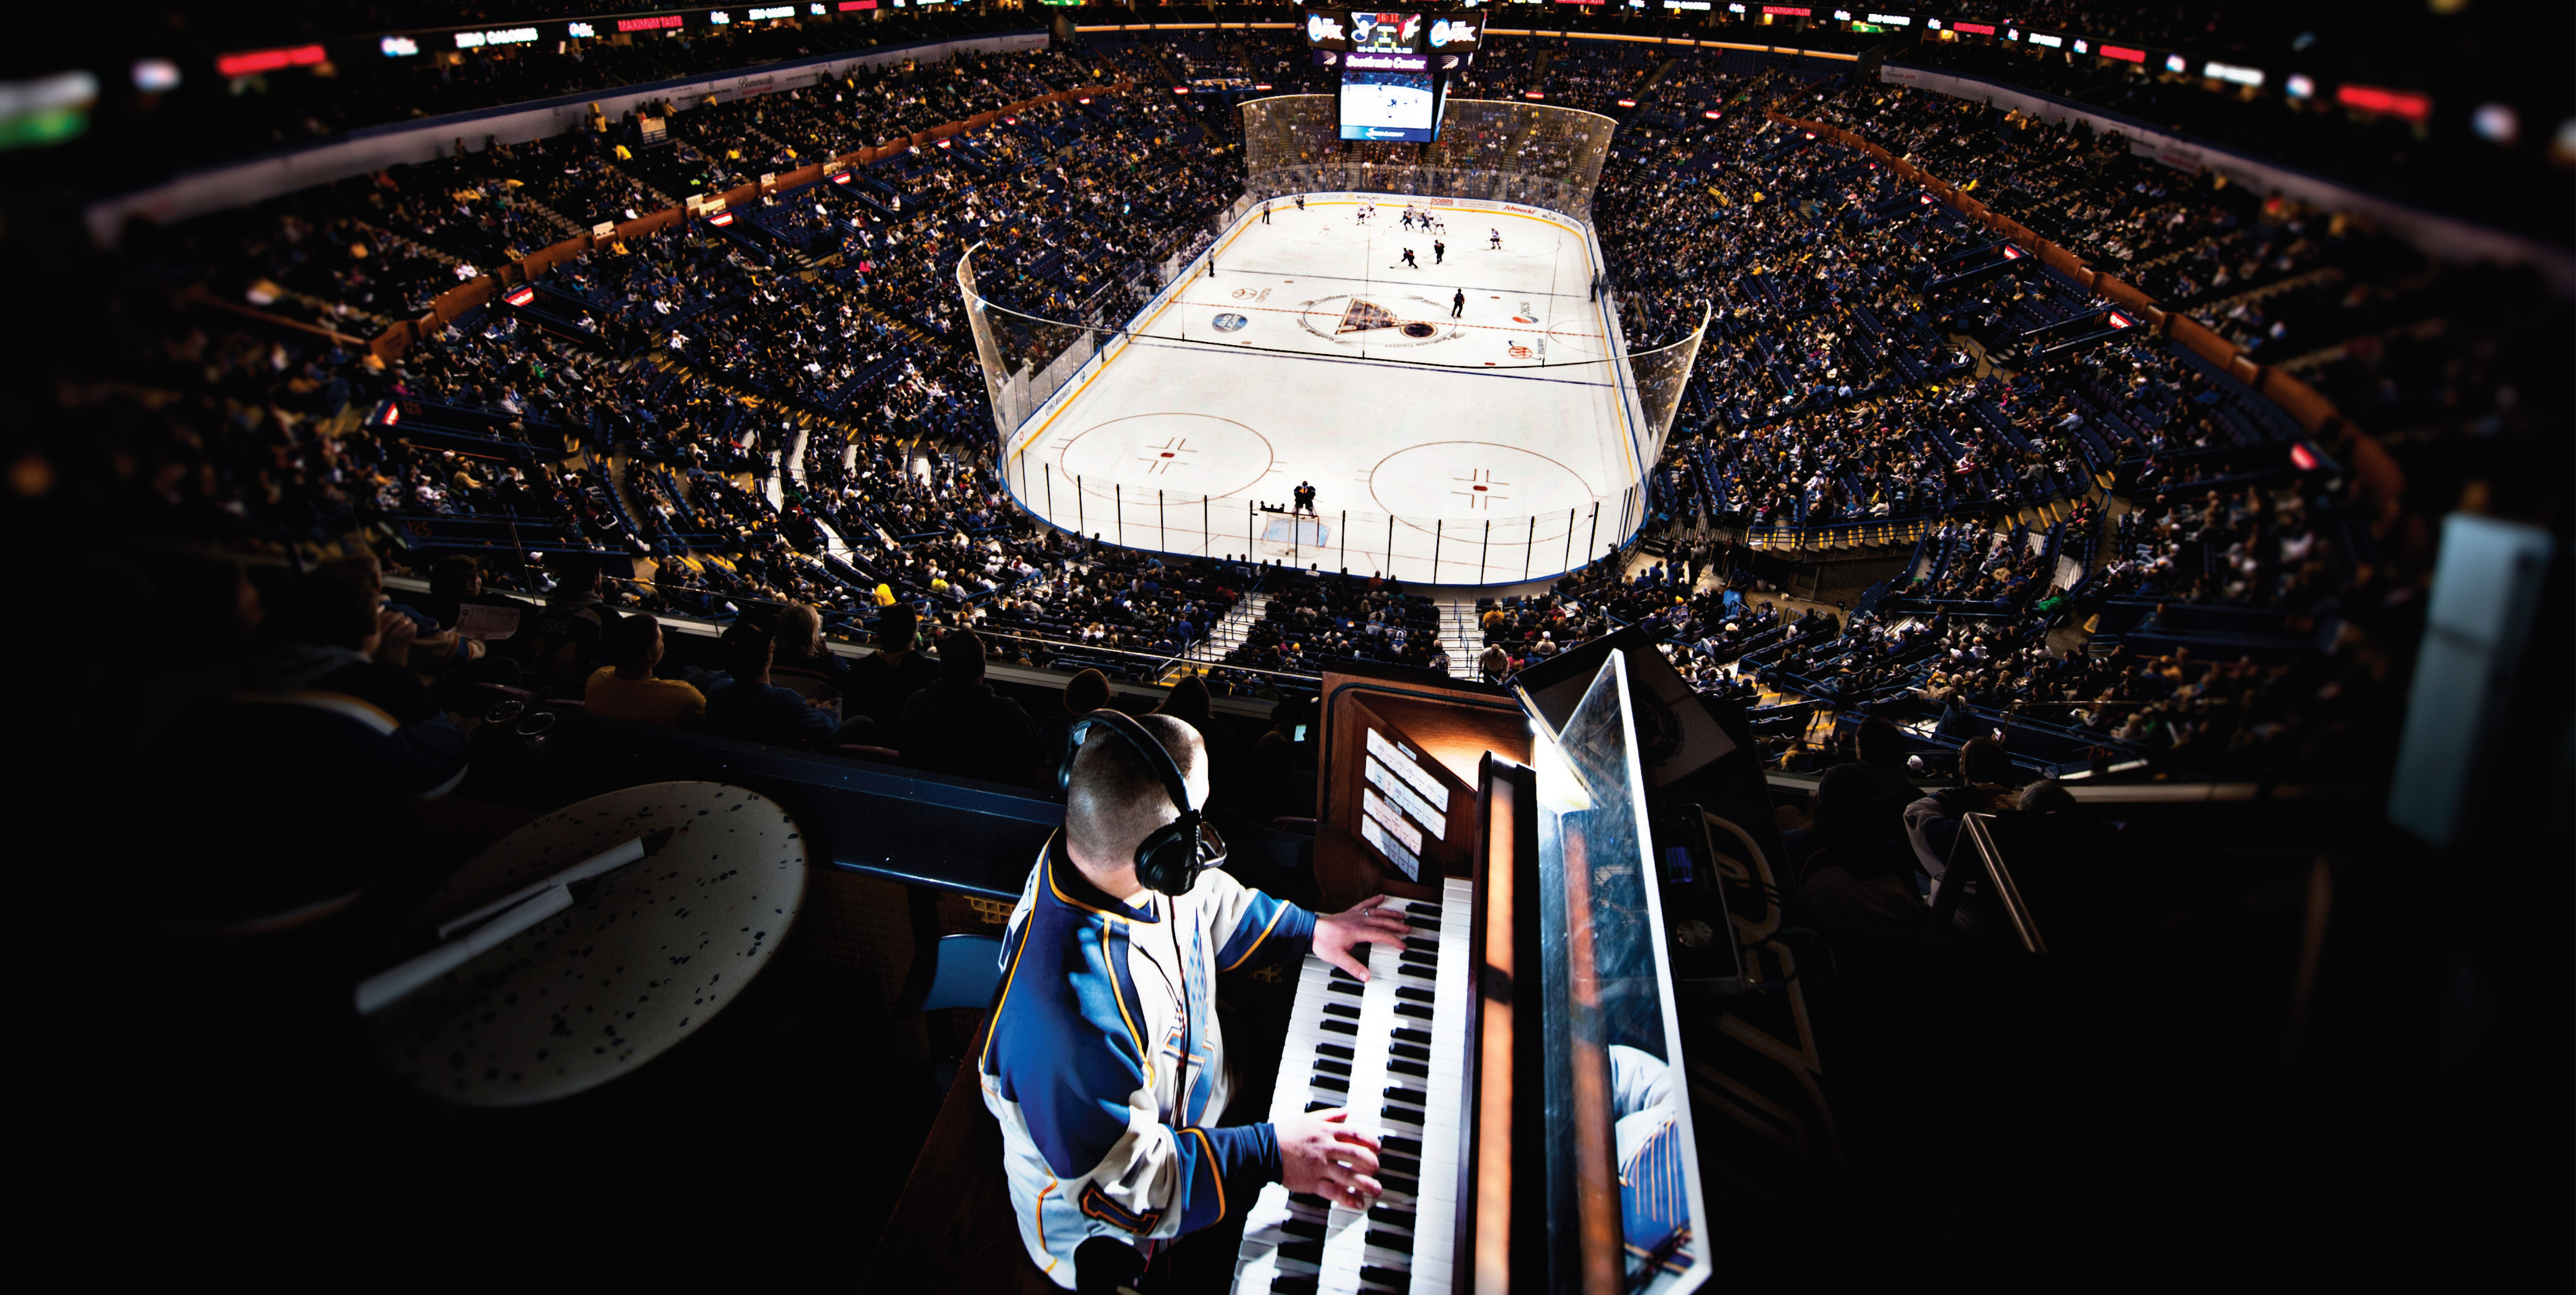 Jeremy Boyer, organist for the St. Louis Blues, watches a play during a Blues game. Used with permission.